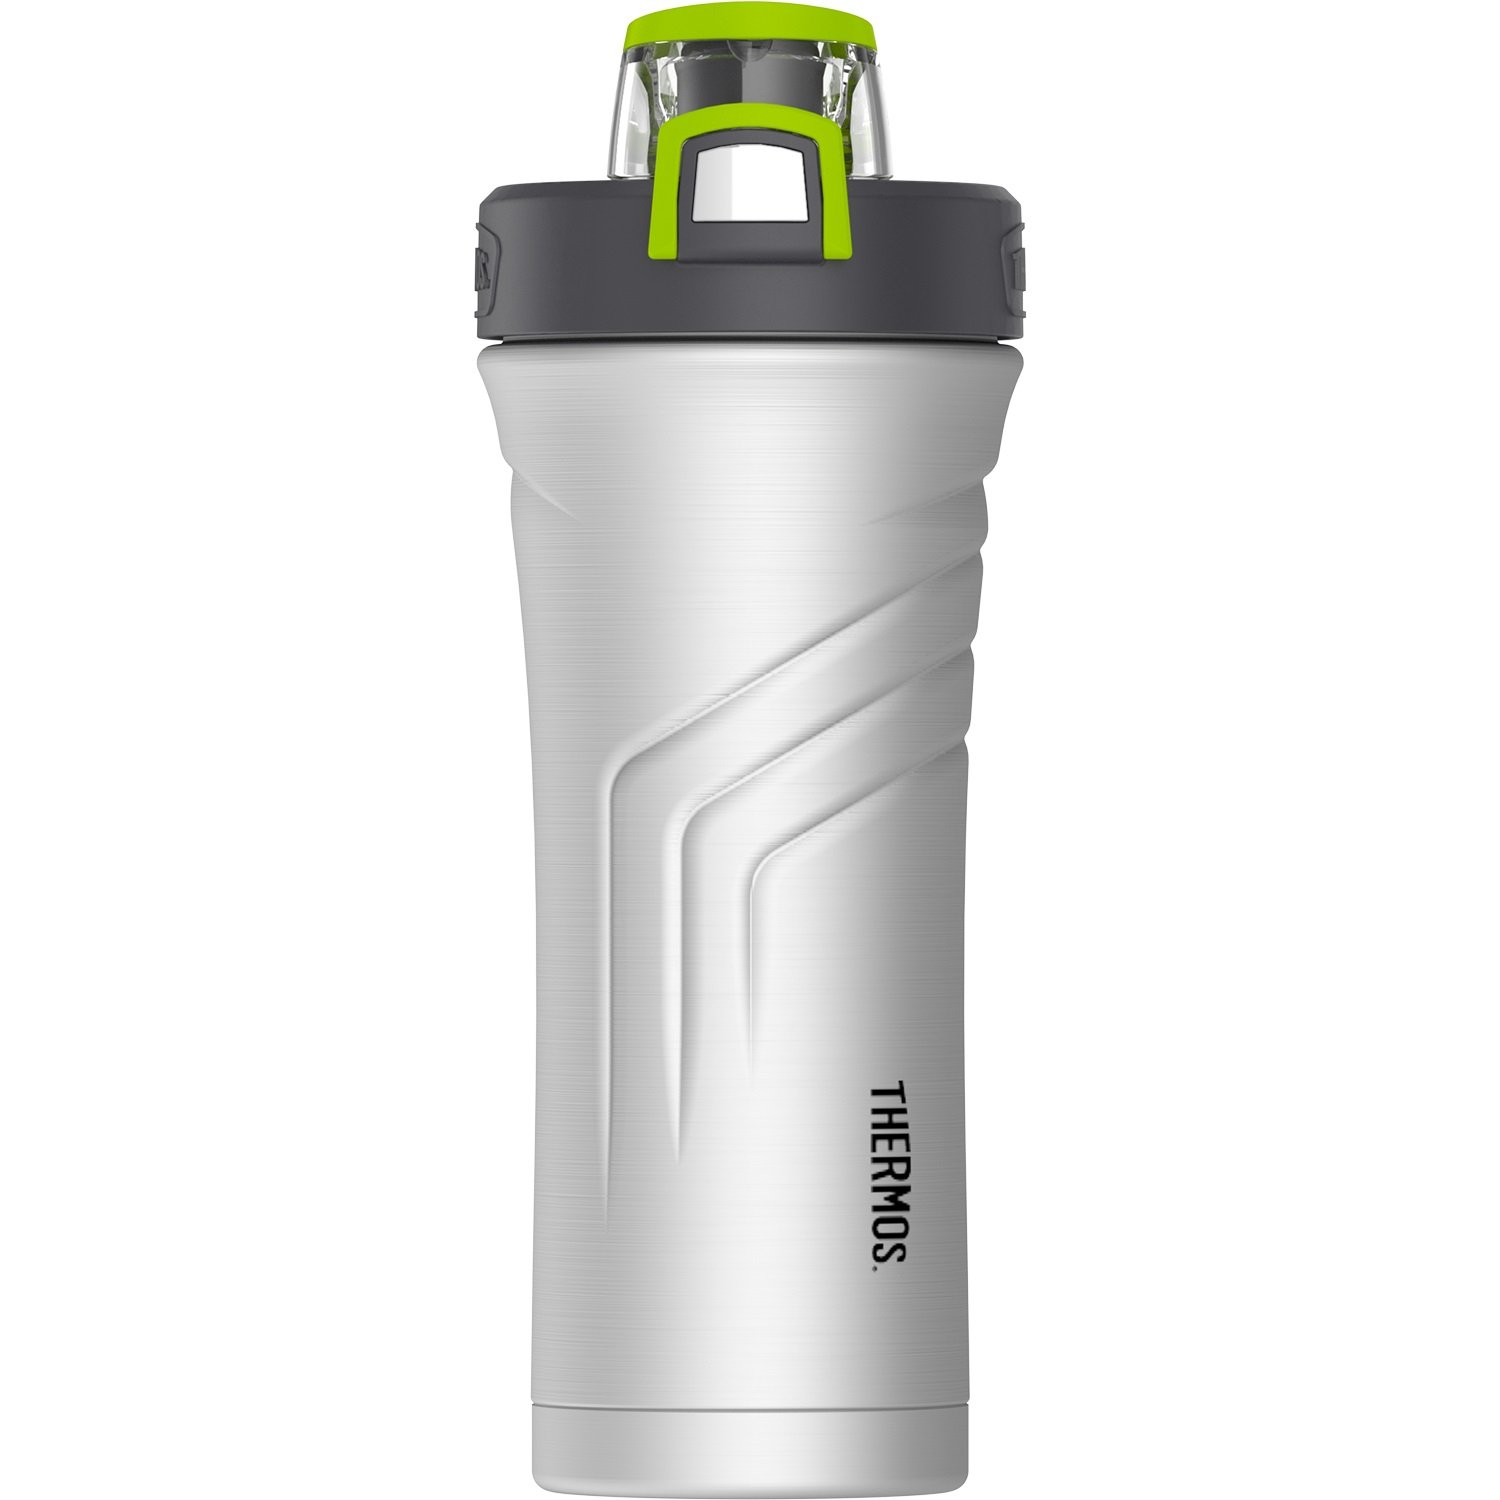 THERMOS Vacuum Insulated Stainless Steel Shaker Bottle with Integrated Stationary Mixer, 24-Ounce, Stainless Steel TS4256SS4